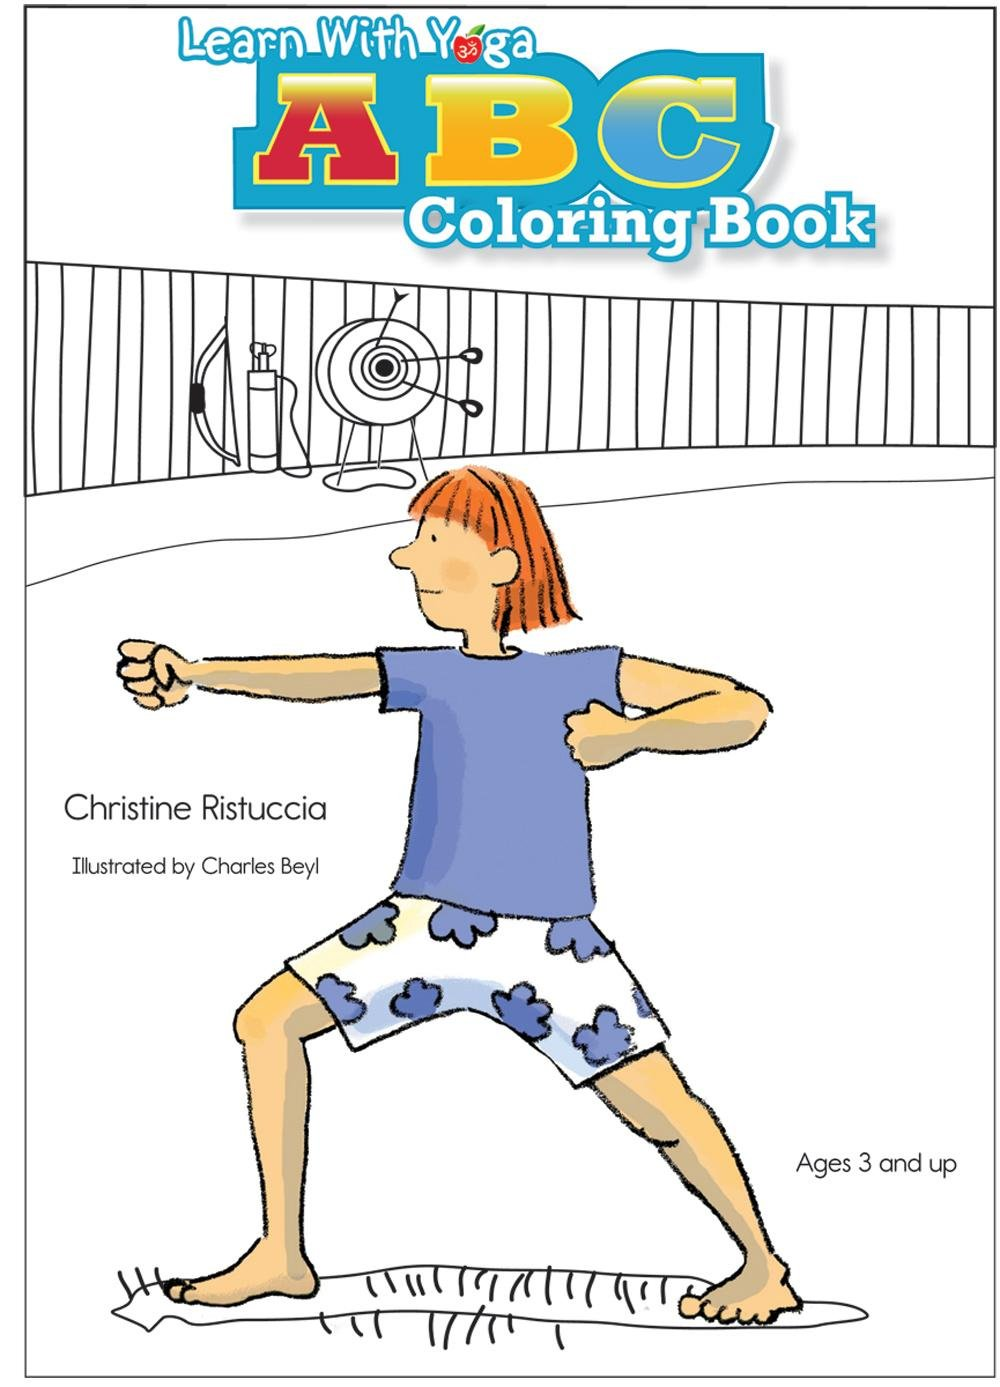 Learn With Yoga ABC Coloring Book: Christine Ristuccia, Say ...